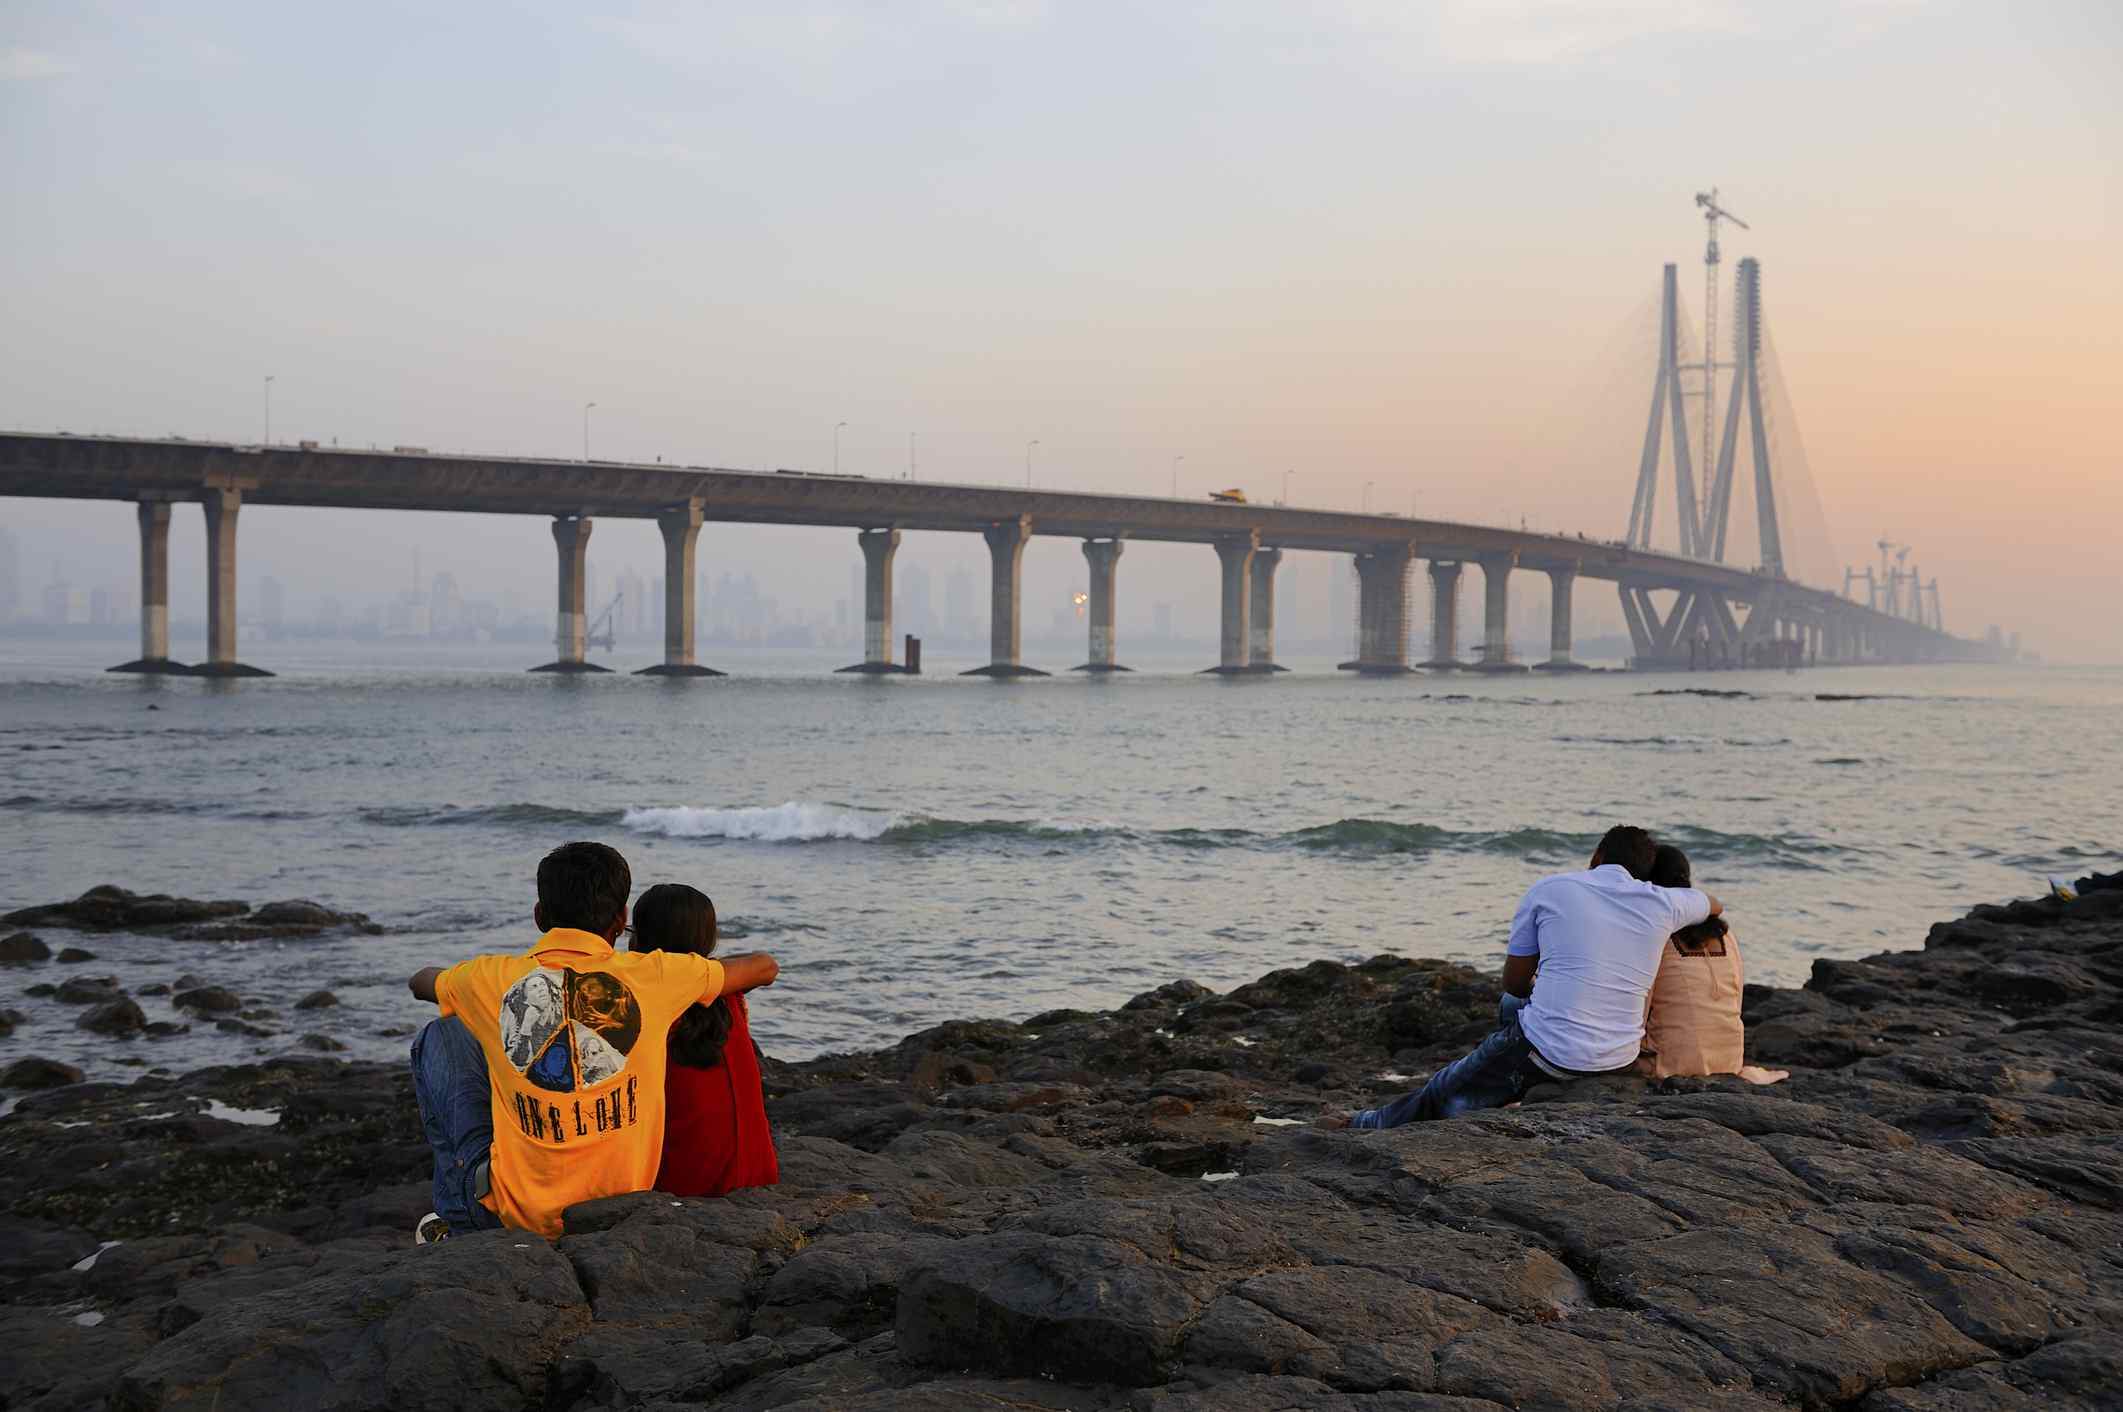 Worli Seaface and the Sealink.